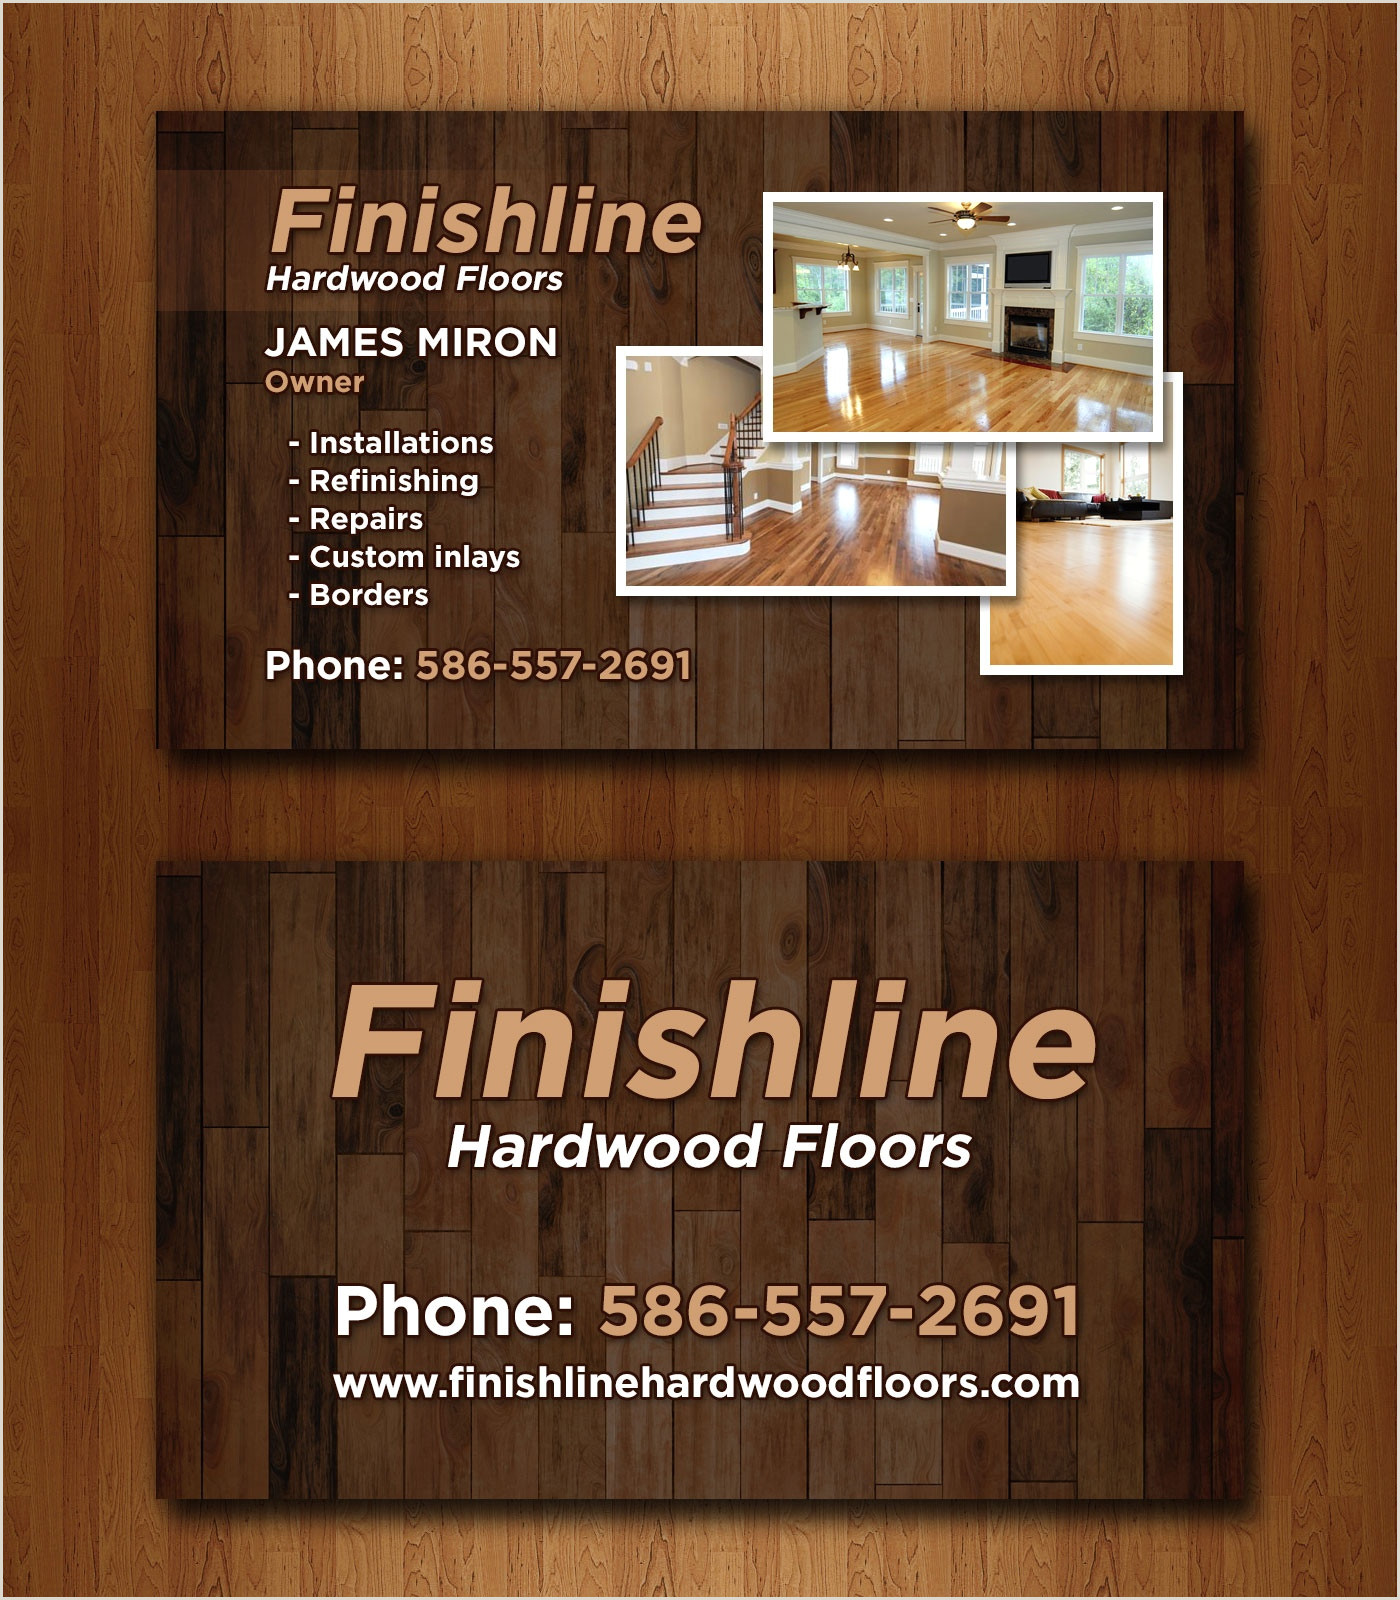 How To Make The Best Business Cards 14 Popular Hardwood Flooring Business Card Template